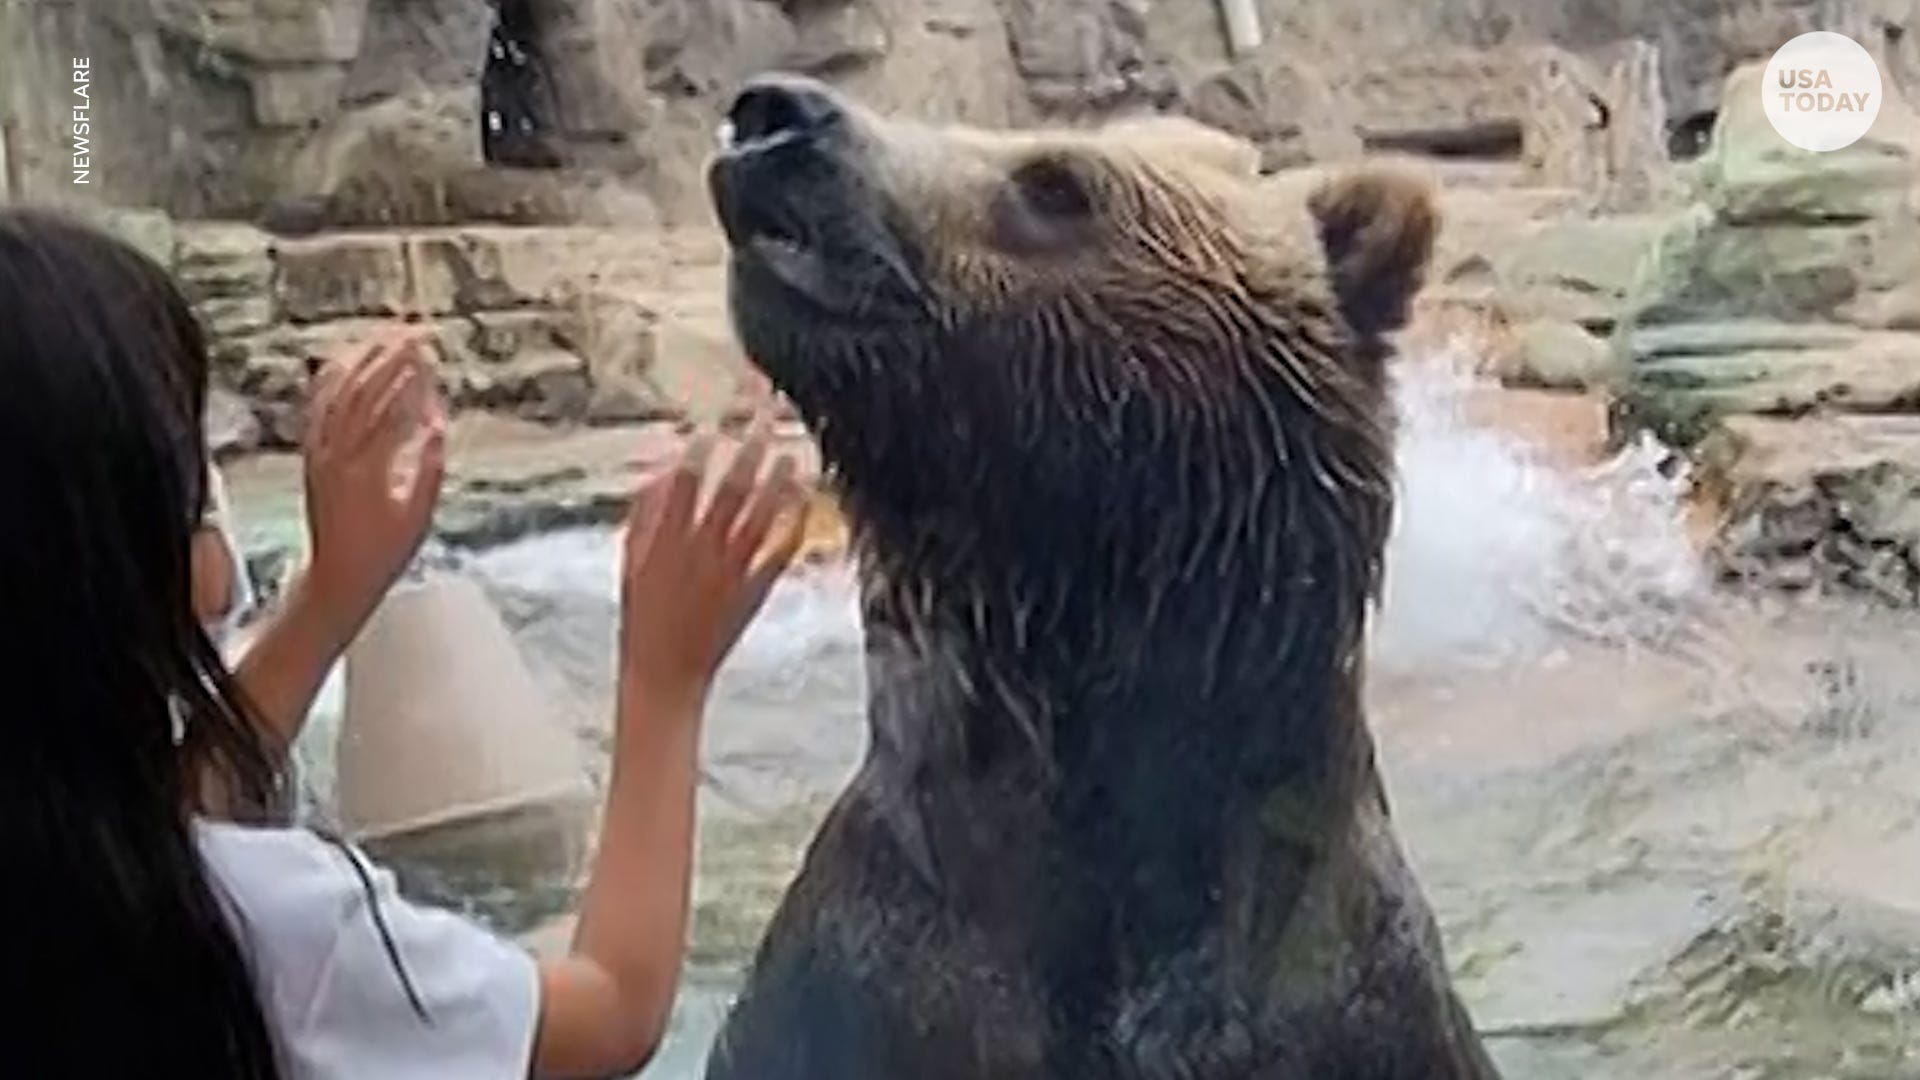 Grizzly bear can't hide excitement when kids visit